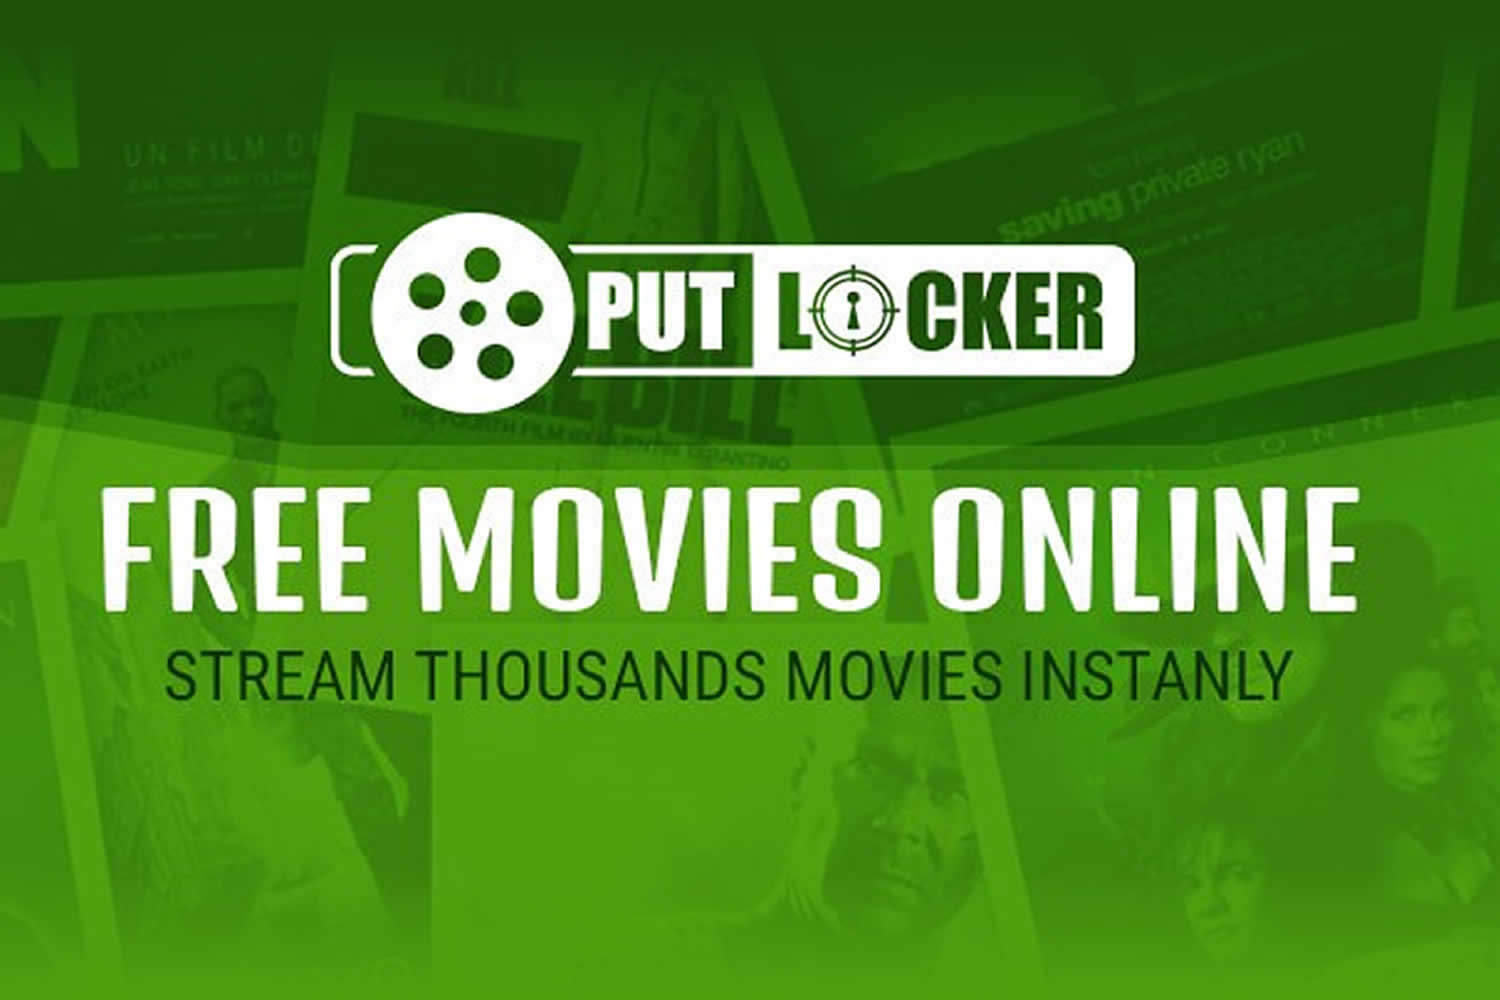 Watch The Hills Putlocker Movies